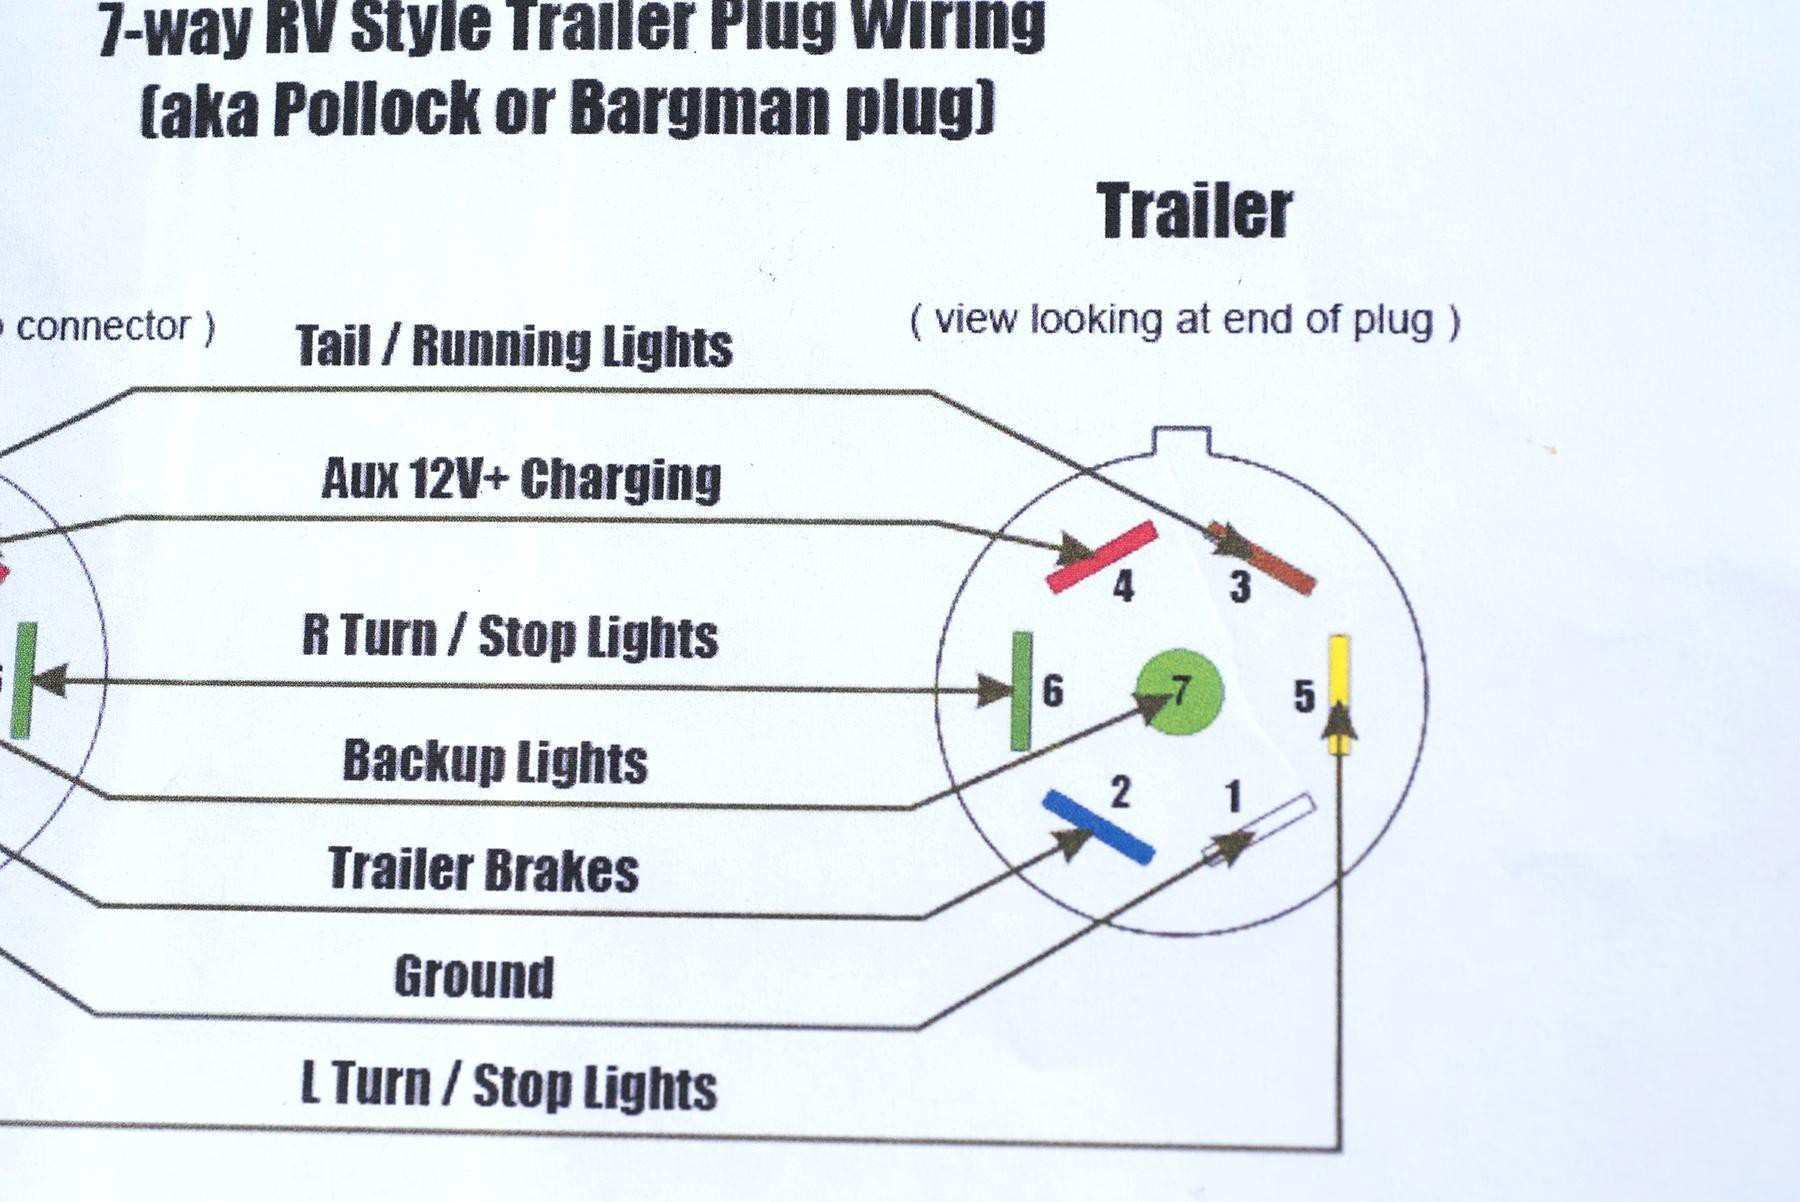 pace trailer wiring diagram wiring diagram schemarv 7 pin wire diagram wiring library pace trailer wiring diagram load rite trailer wiring diagram pace trailer wiring diagram